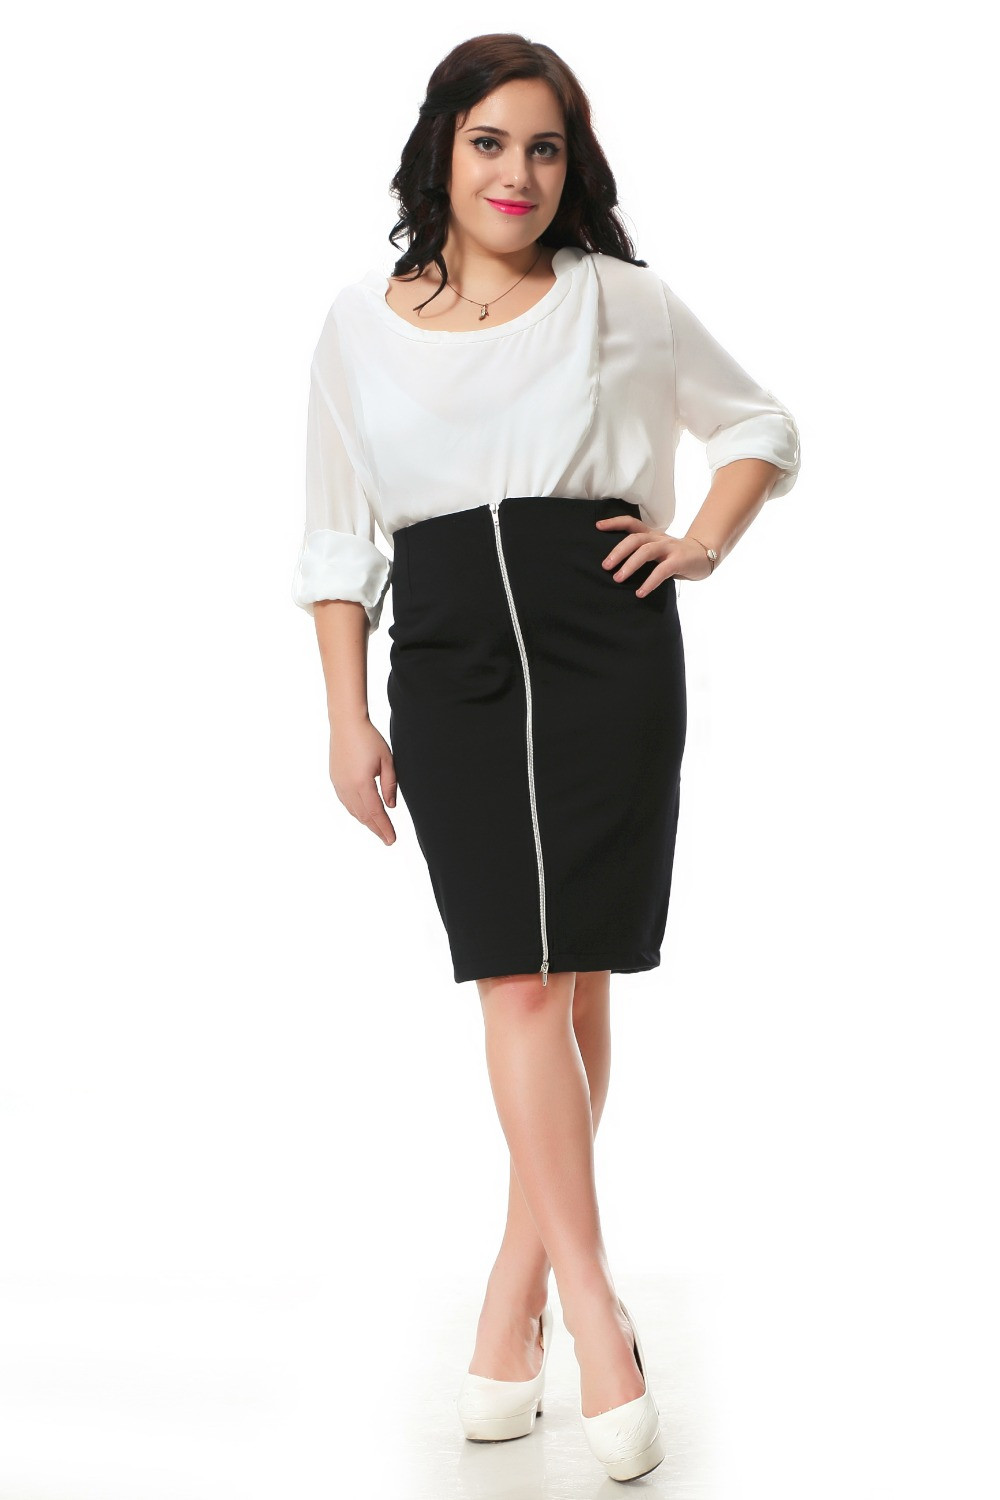 Plus Size Skirt With Zip Decoration In Front Sexy Pencil Skirt Women